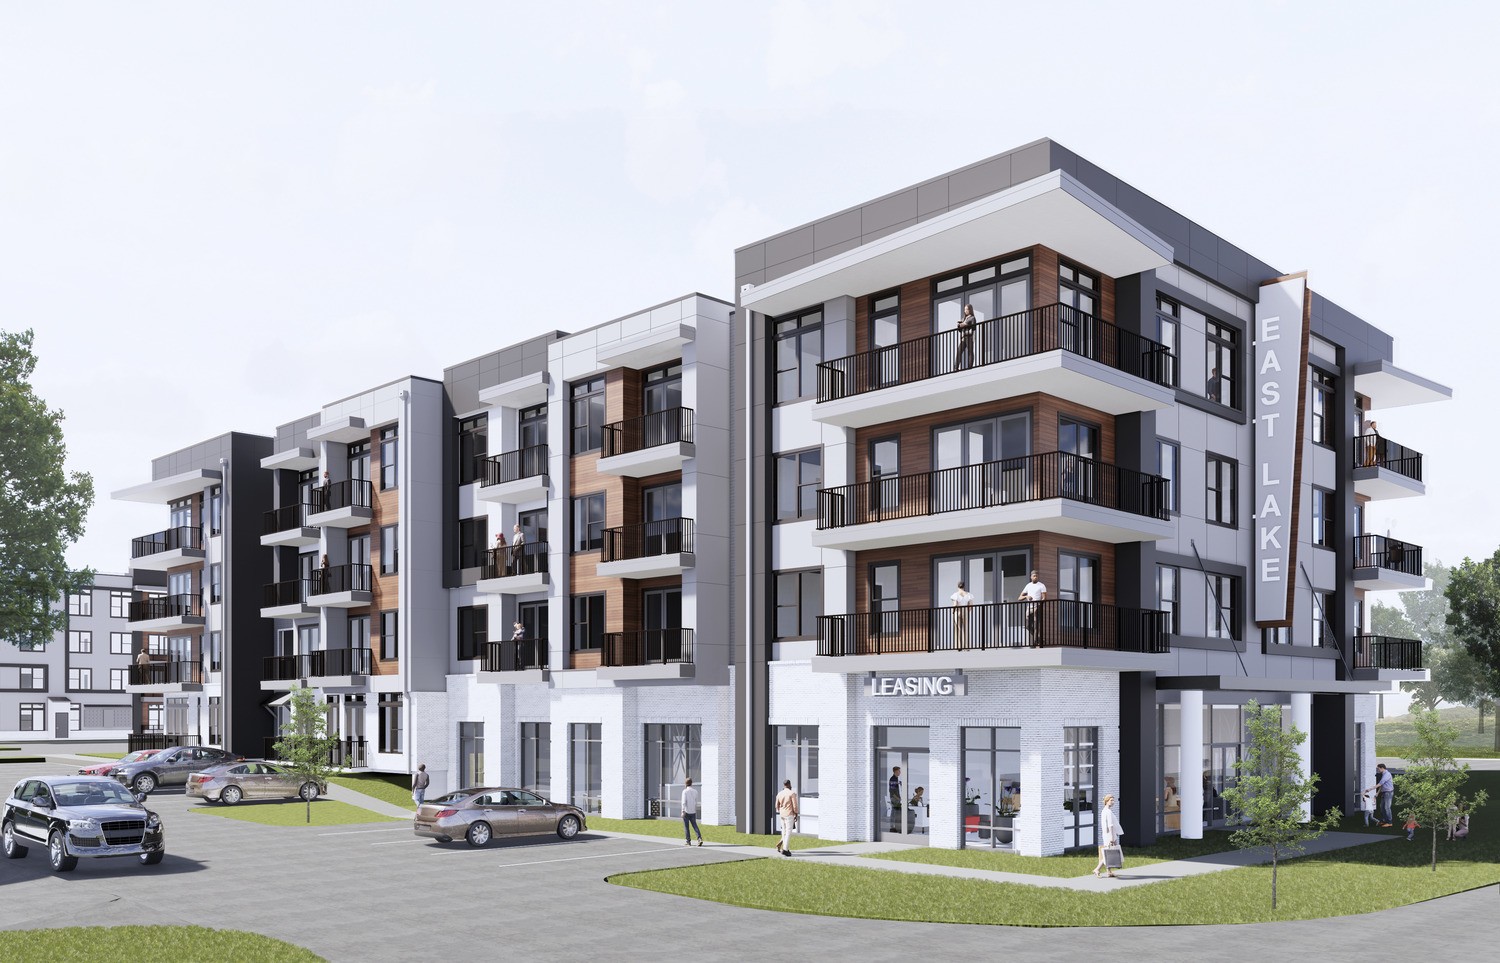 CBG builds East Lake, a 230-Unit, Four-Building Mixed-Use Community with Office Space and Amenities in Atlanta, GA